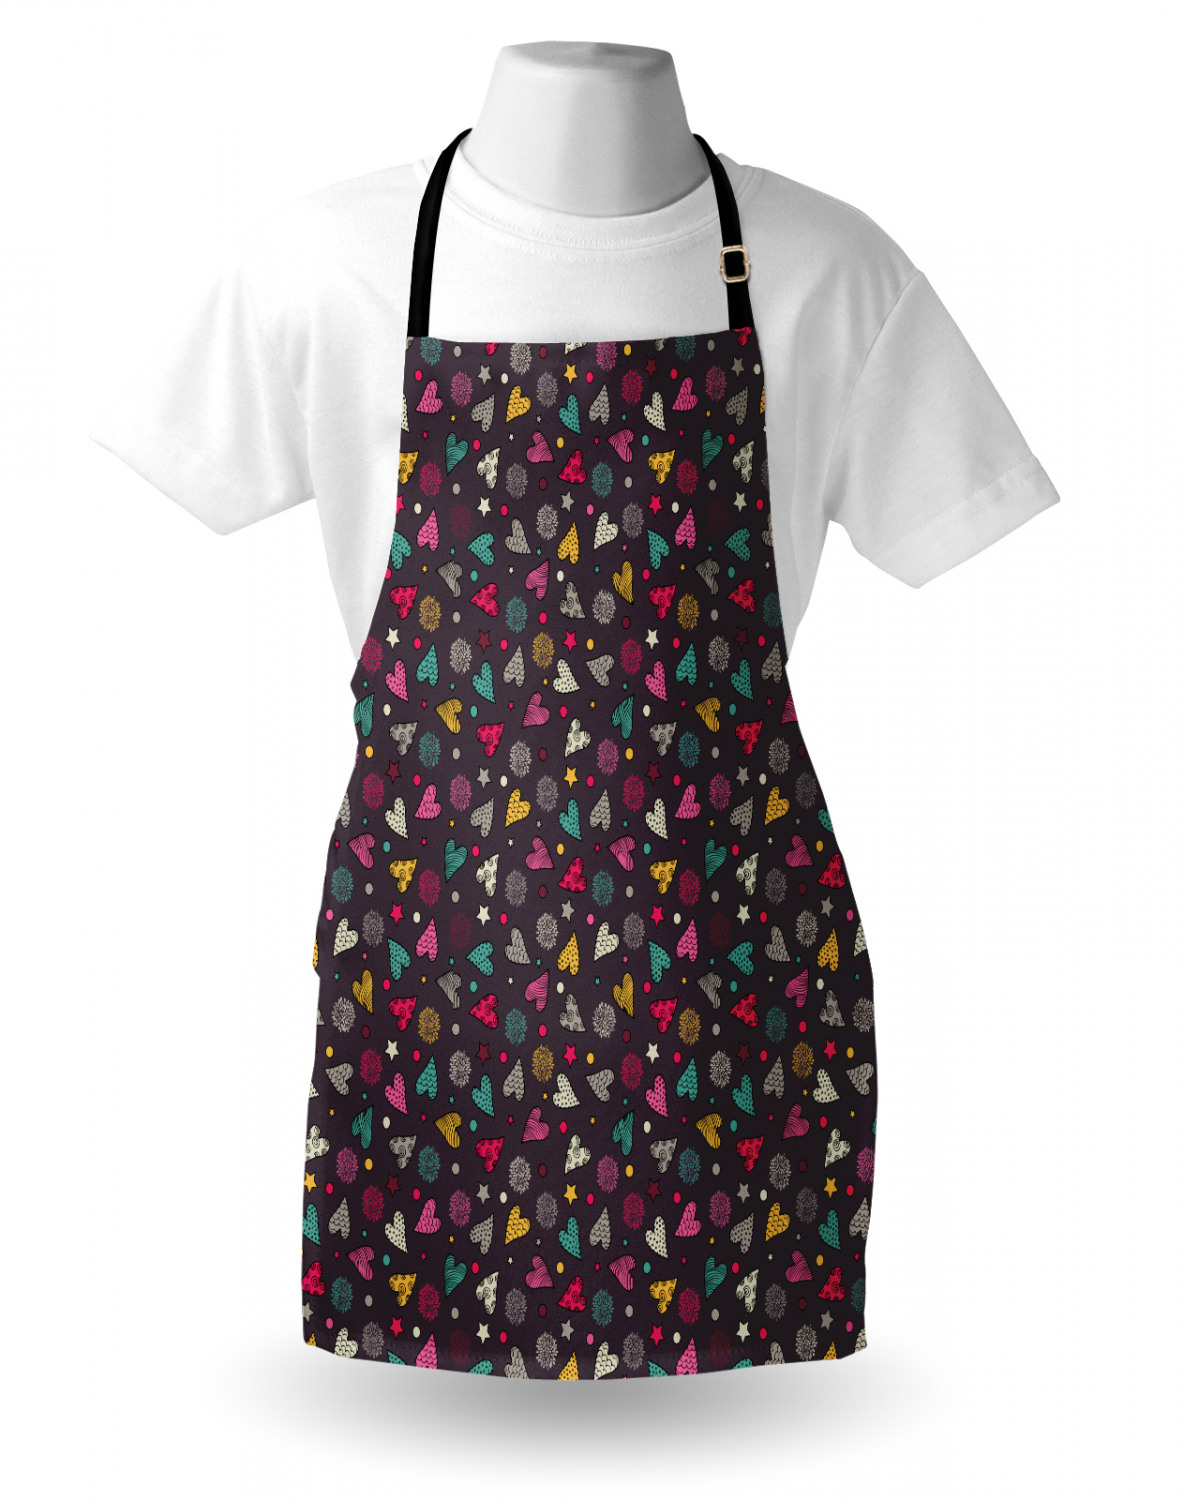 Ambesonne-Outdoor-Use-Apron-with-Adjustable-Neck-Strap-for-Gardening-and-Cooking miniatura 63